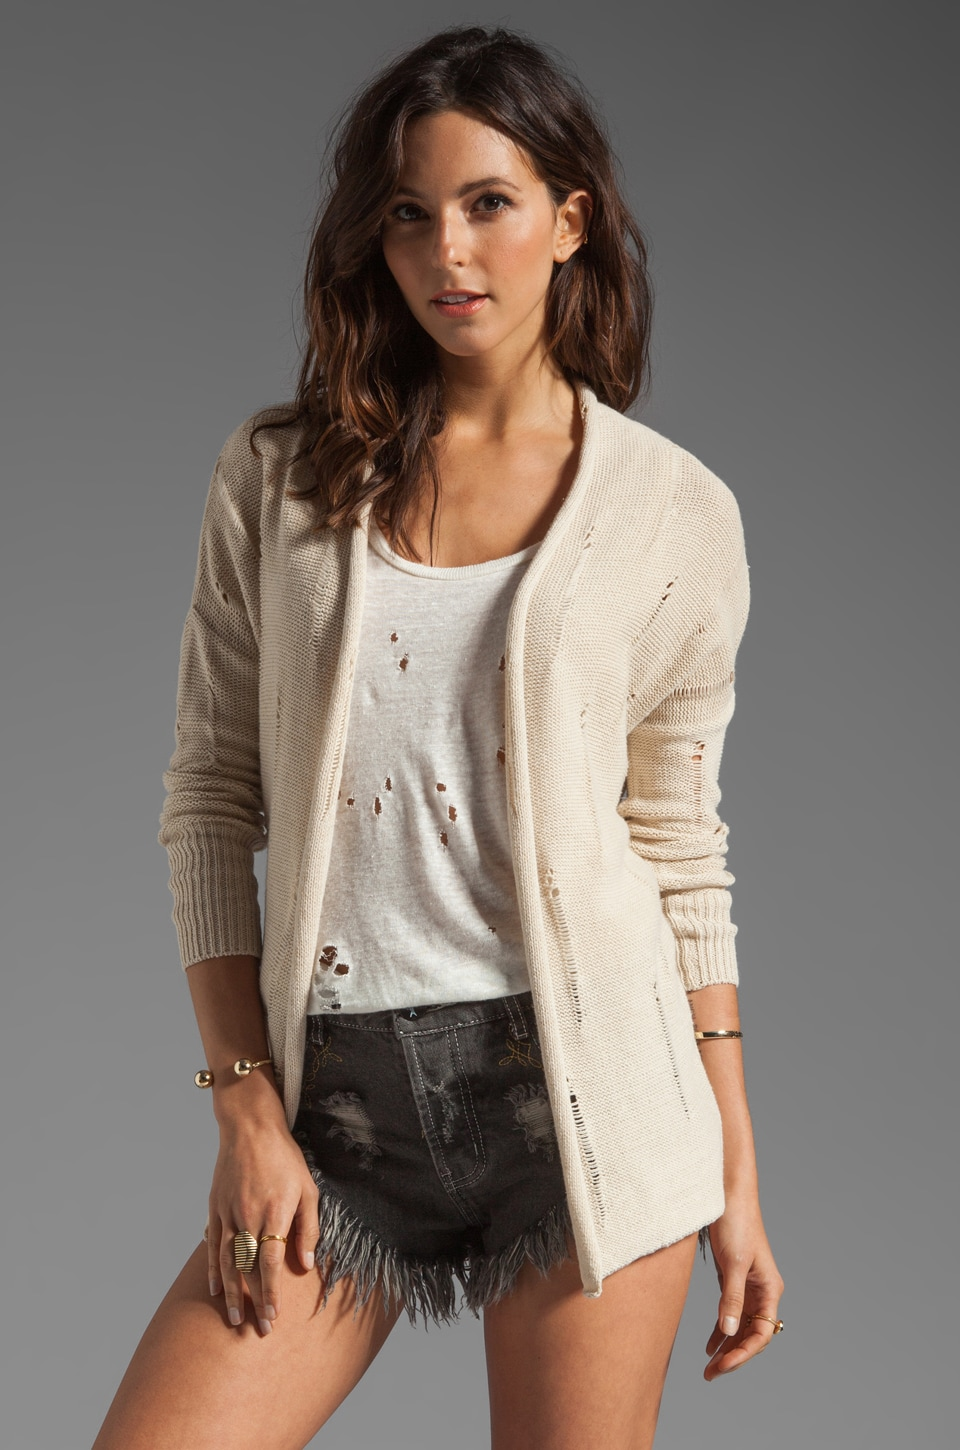 RVCA Hausa Sweater in Oatmeal